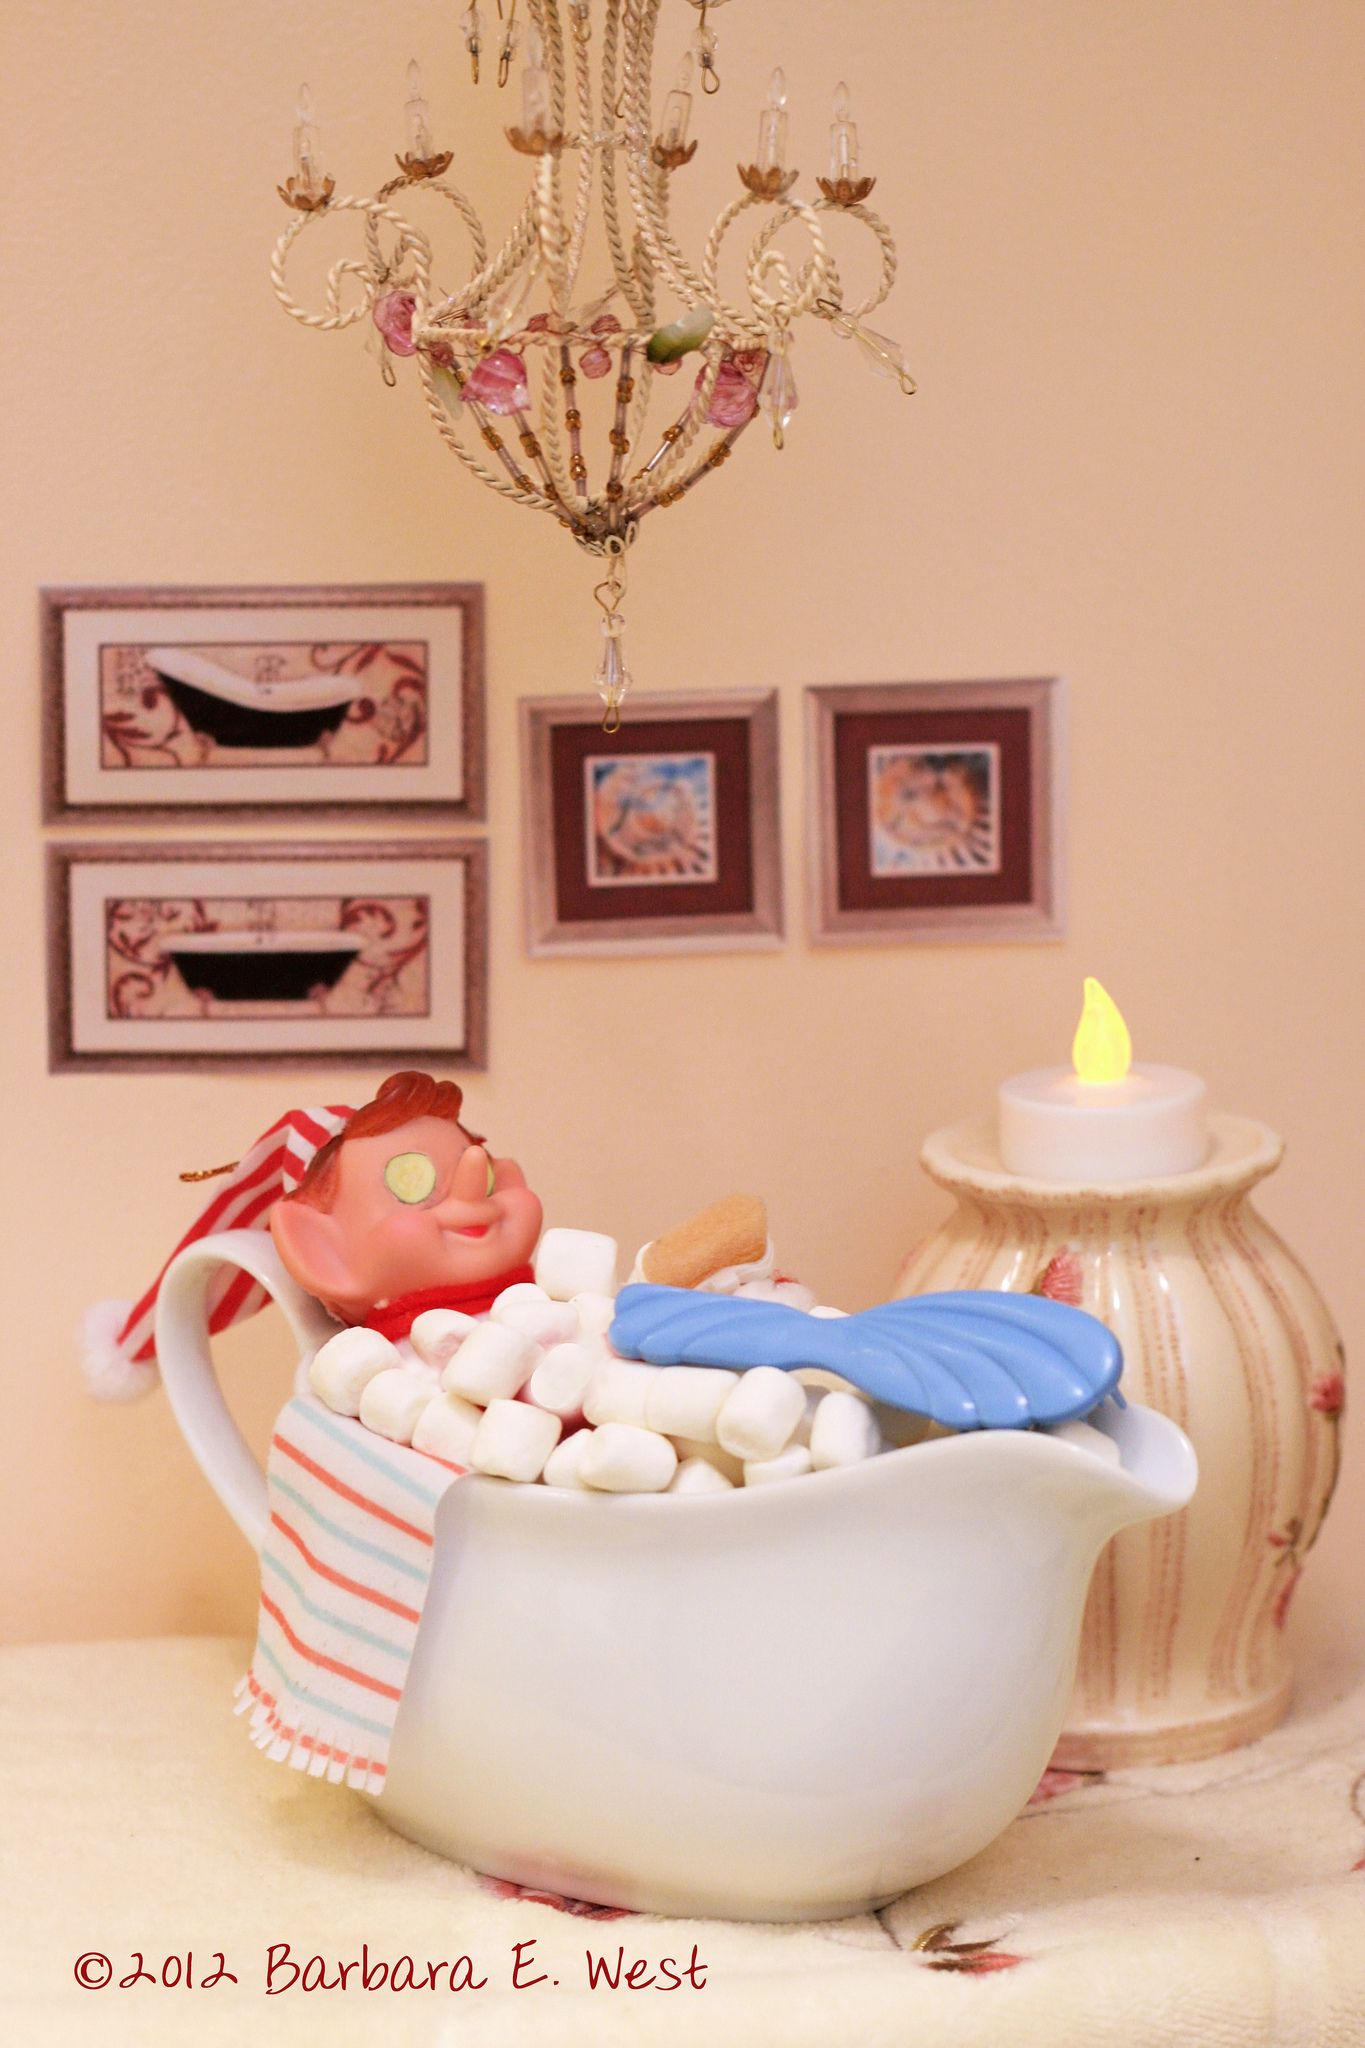 https://flic.kr/p/dAnQLb | (Vintage) Elf on the Shelf - bubble bath | Our Christmas elf sure knows how to relax after a long trip to the North Pole - soaking in a bubble bath, complete with cucumbers on his eyes, bath loofah and back scrubber and a candle to set the mood.